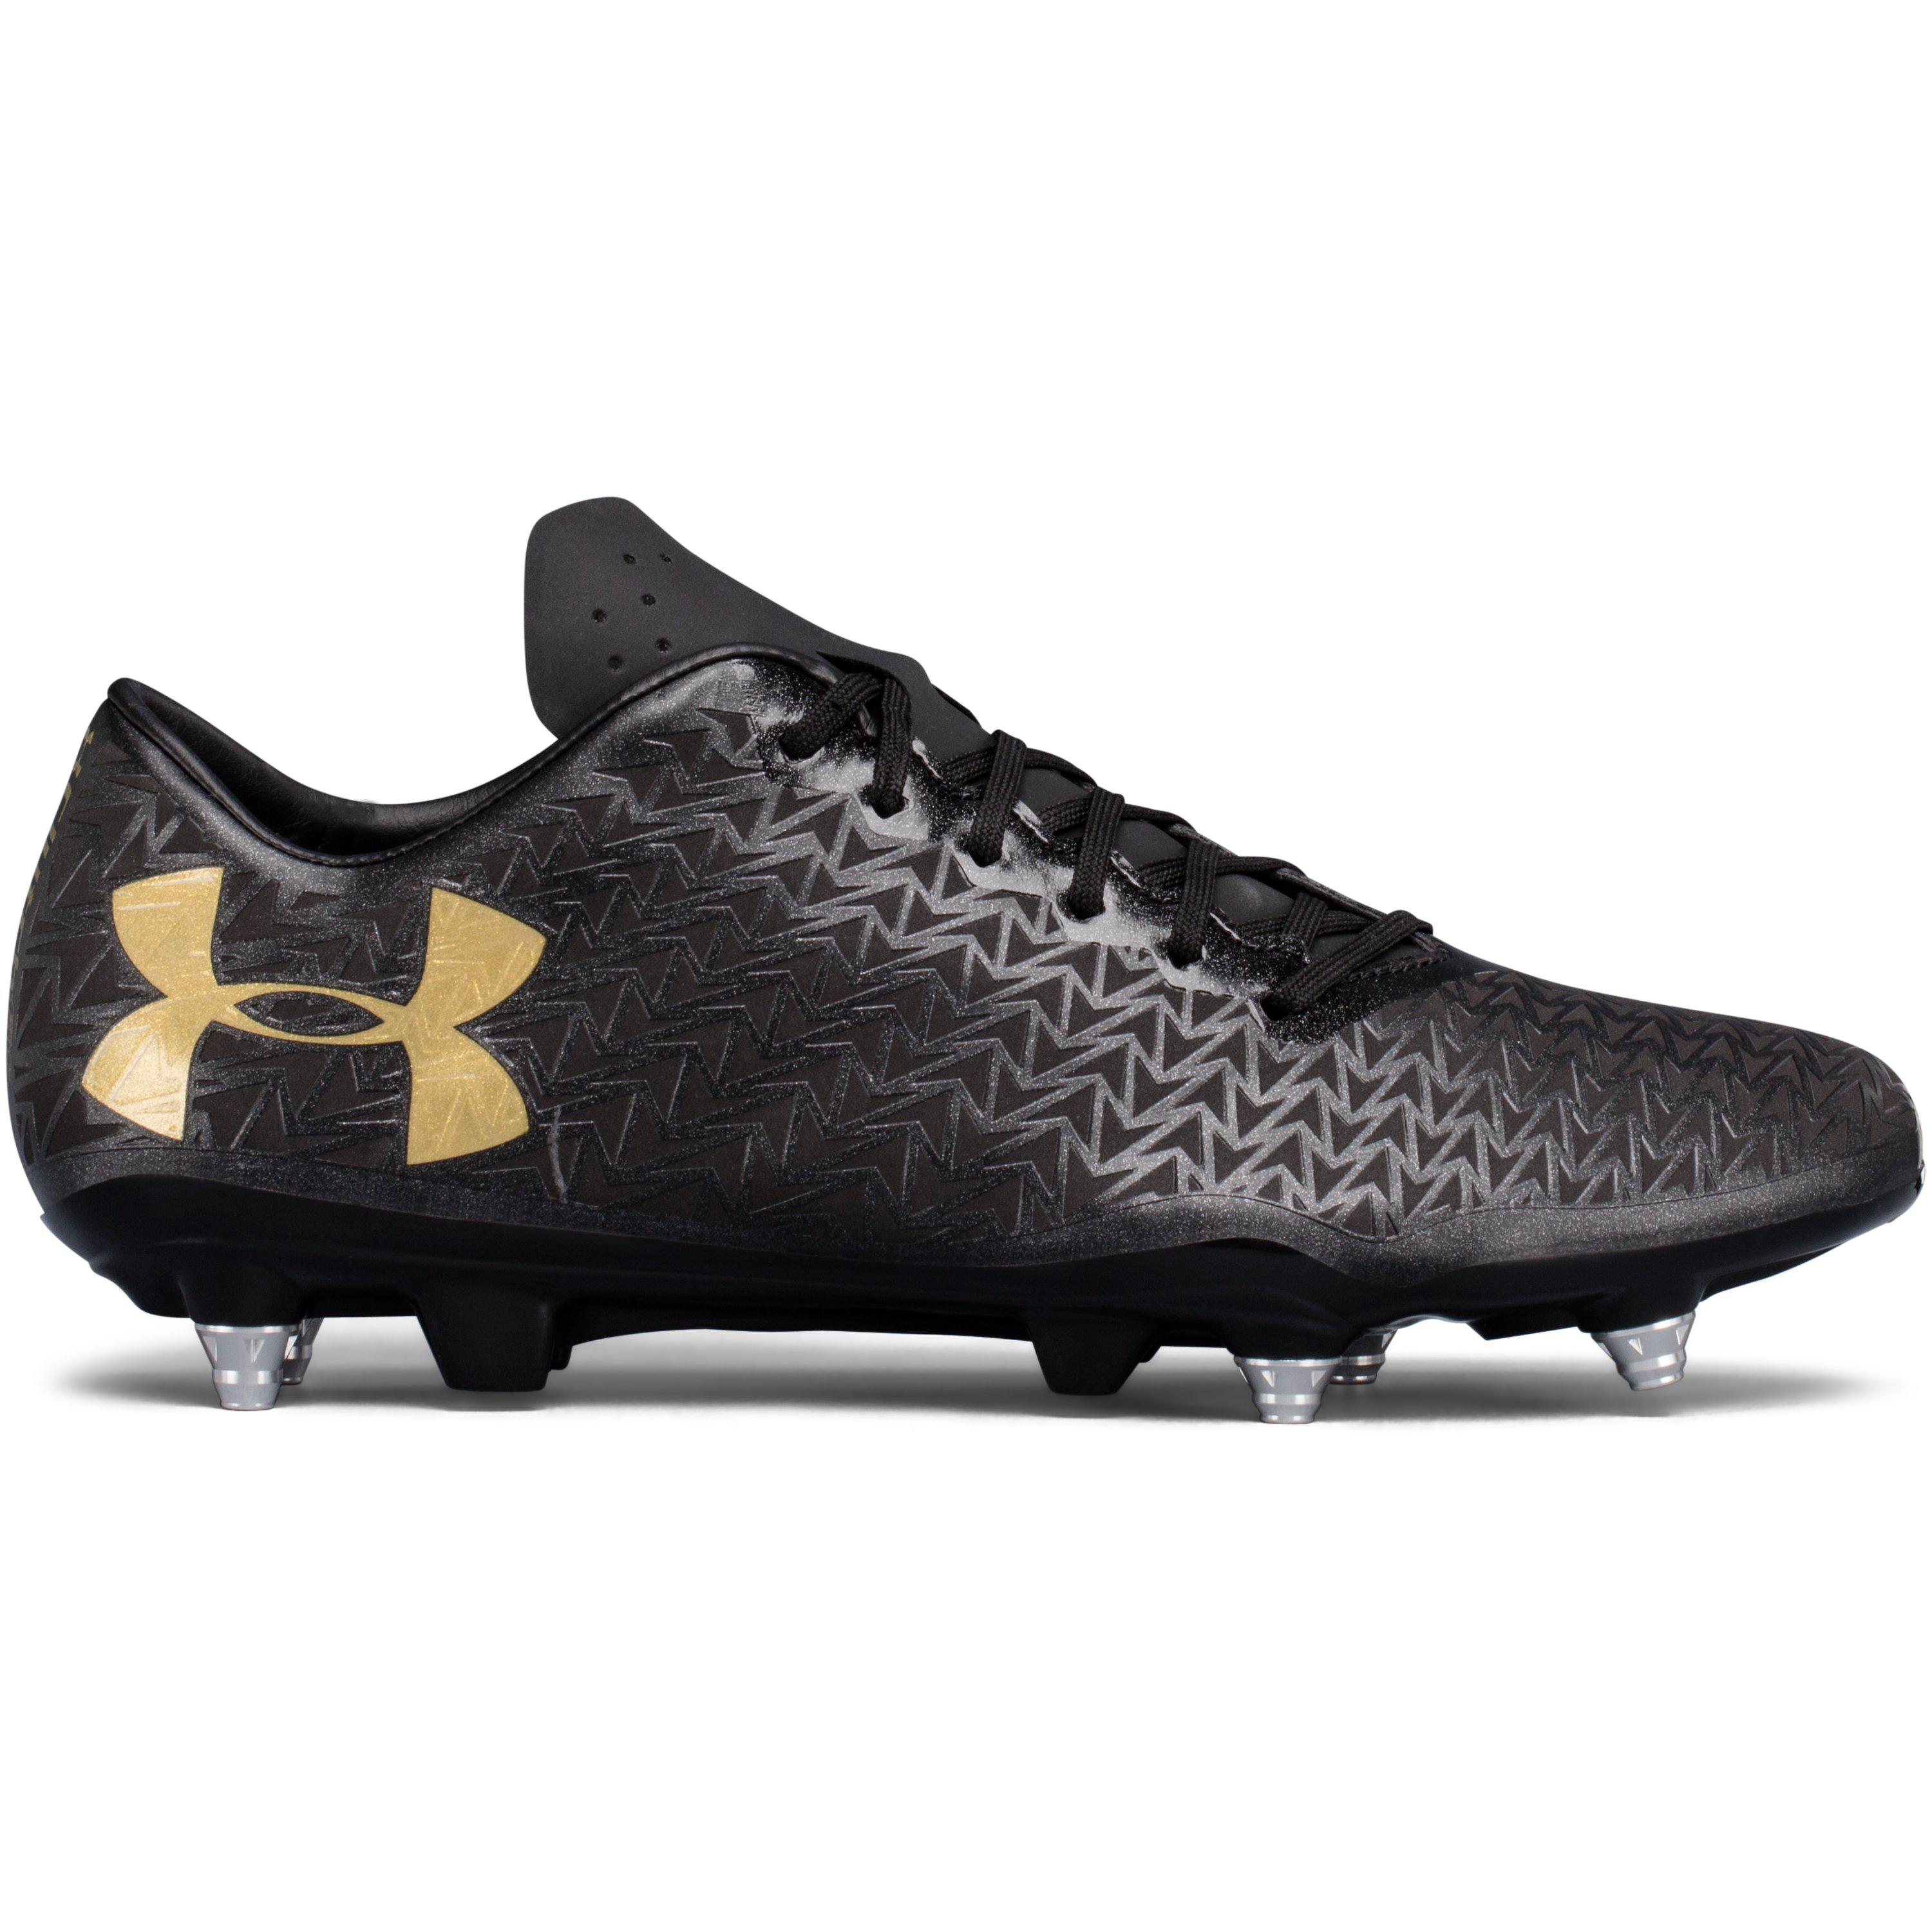 Under Armour. Black Men's Ua Corespeed Hybrid Rugby Cleats